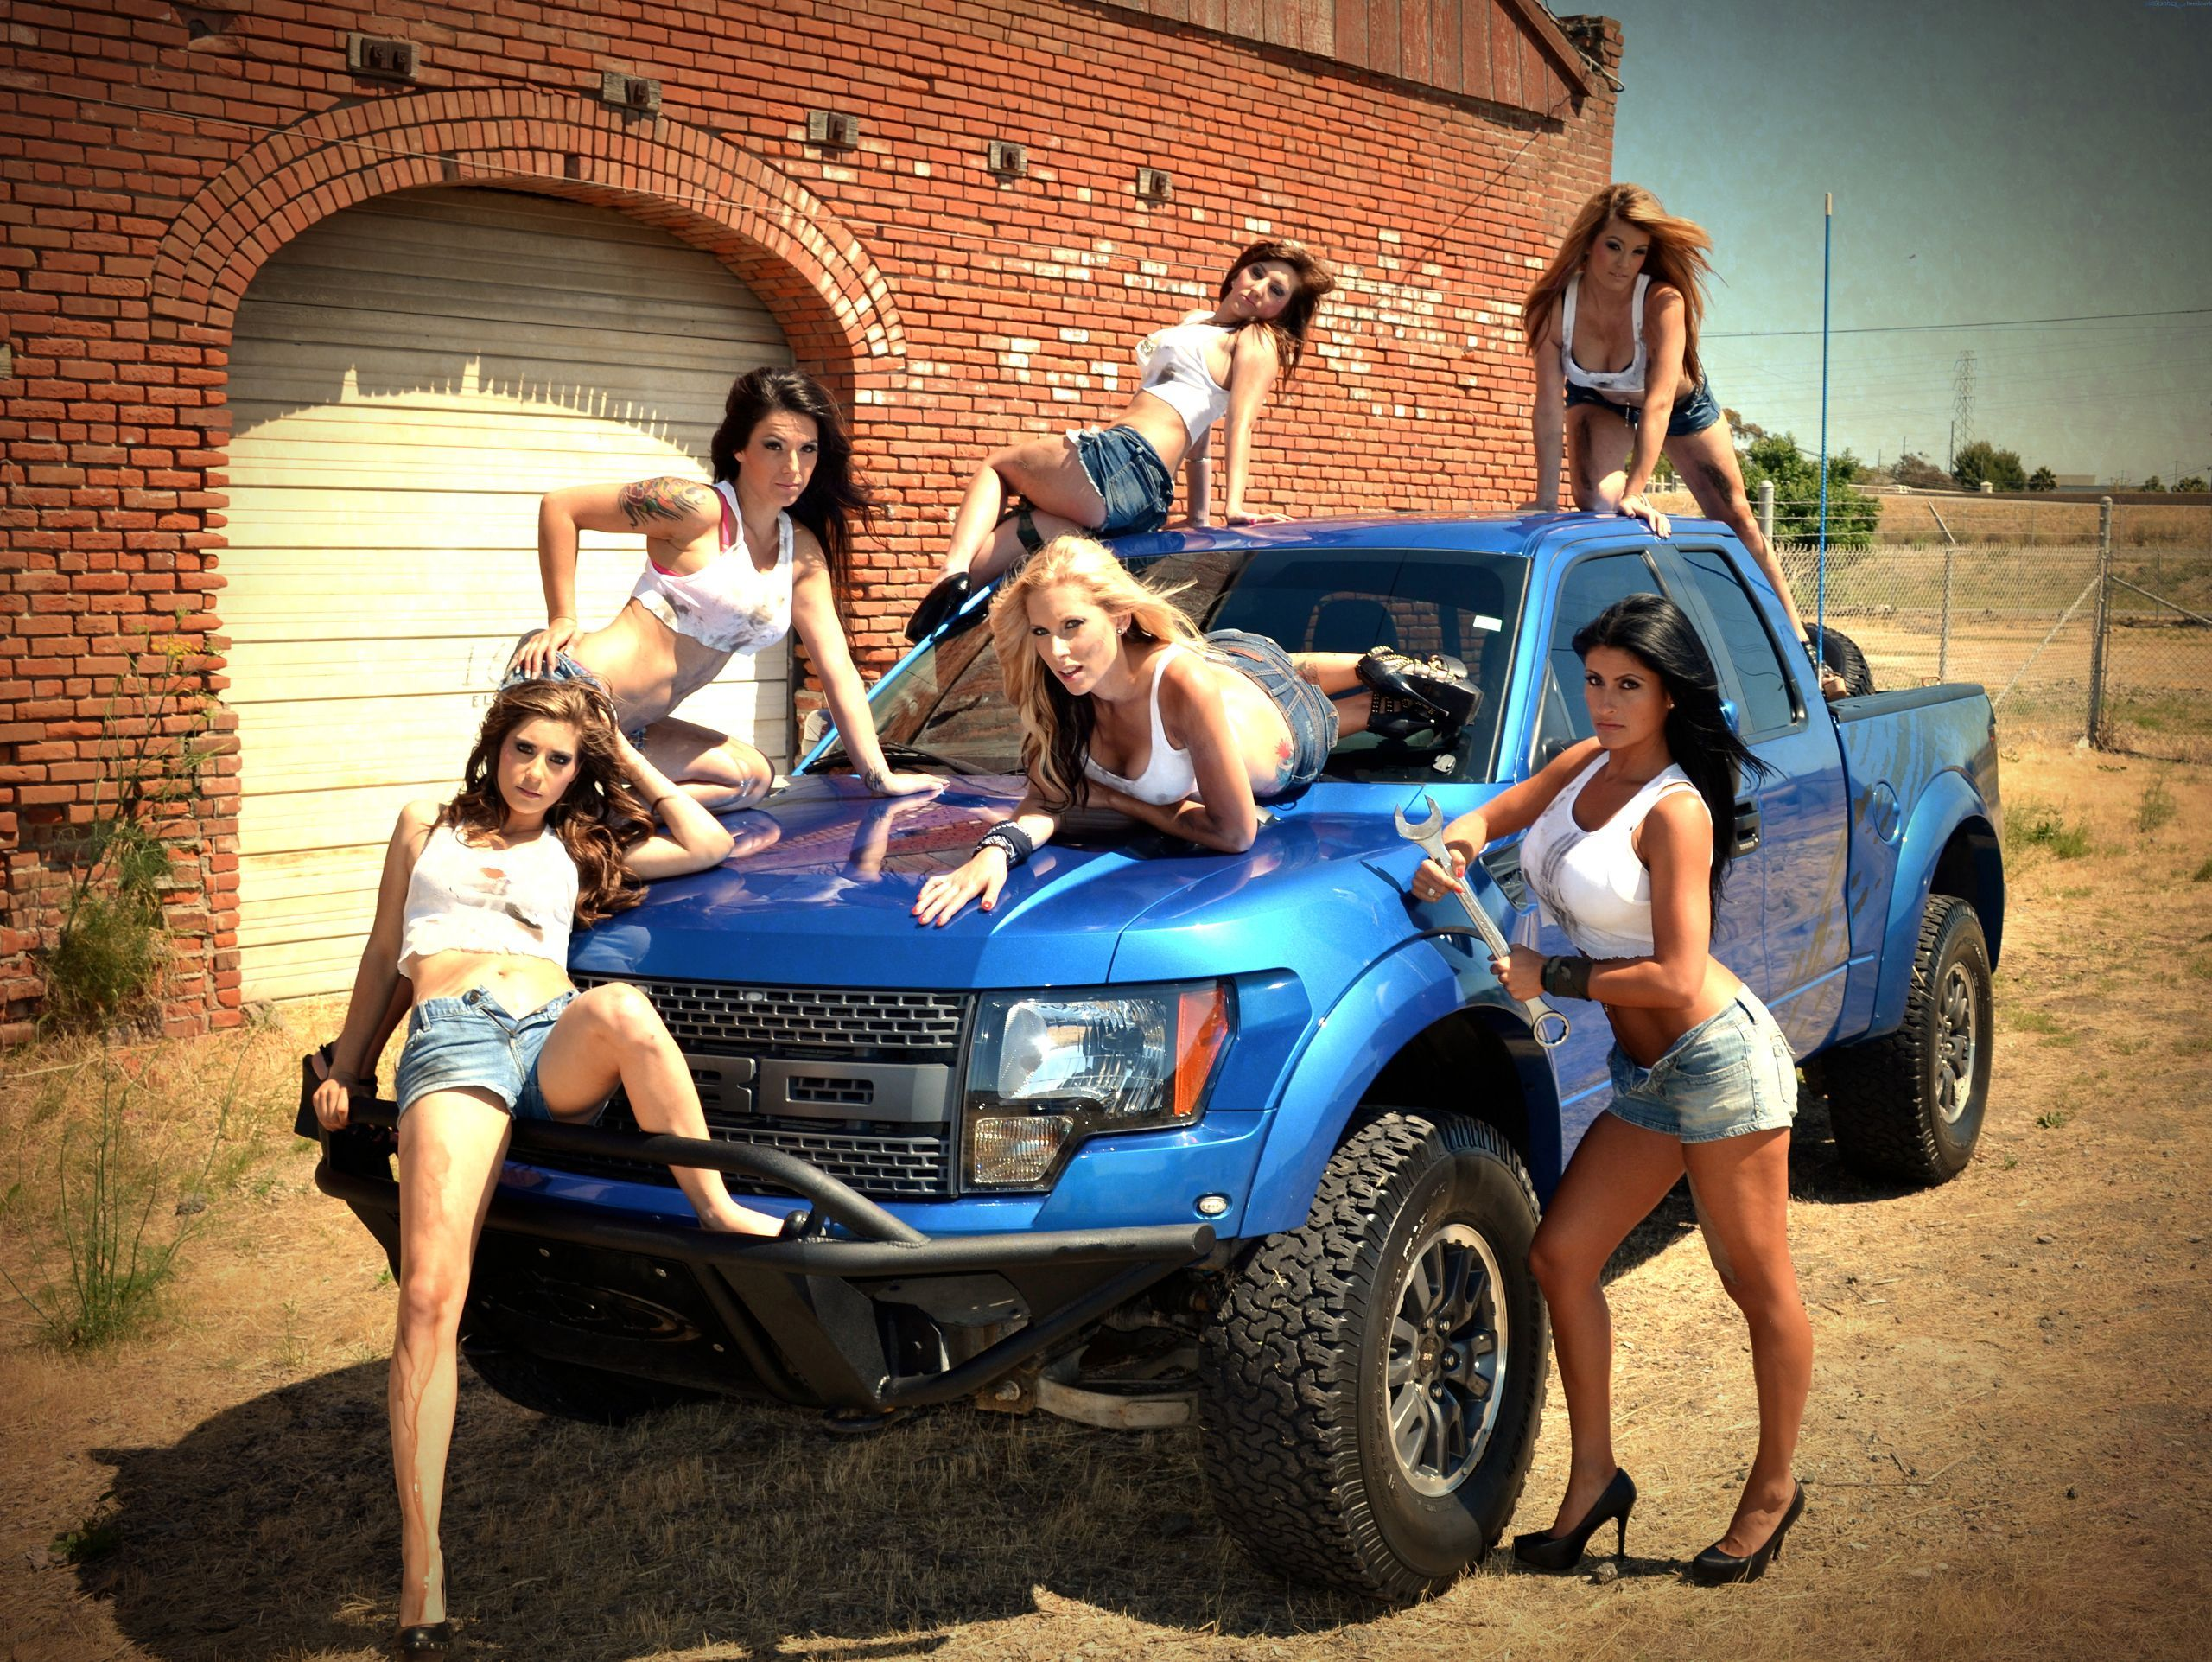 Hot girls and big trucks ford svt raptor dream carstrucks hot girls and big trucks ford svt raptor voltagebd Gallery